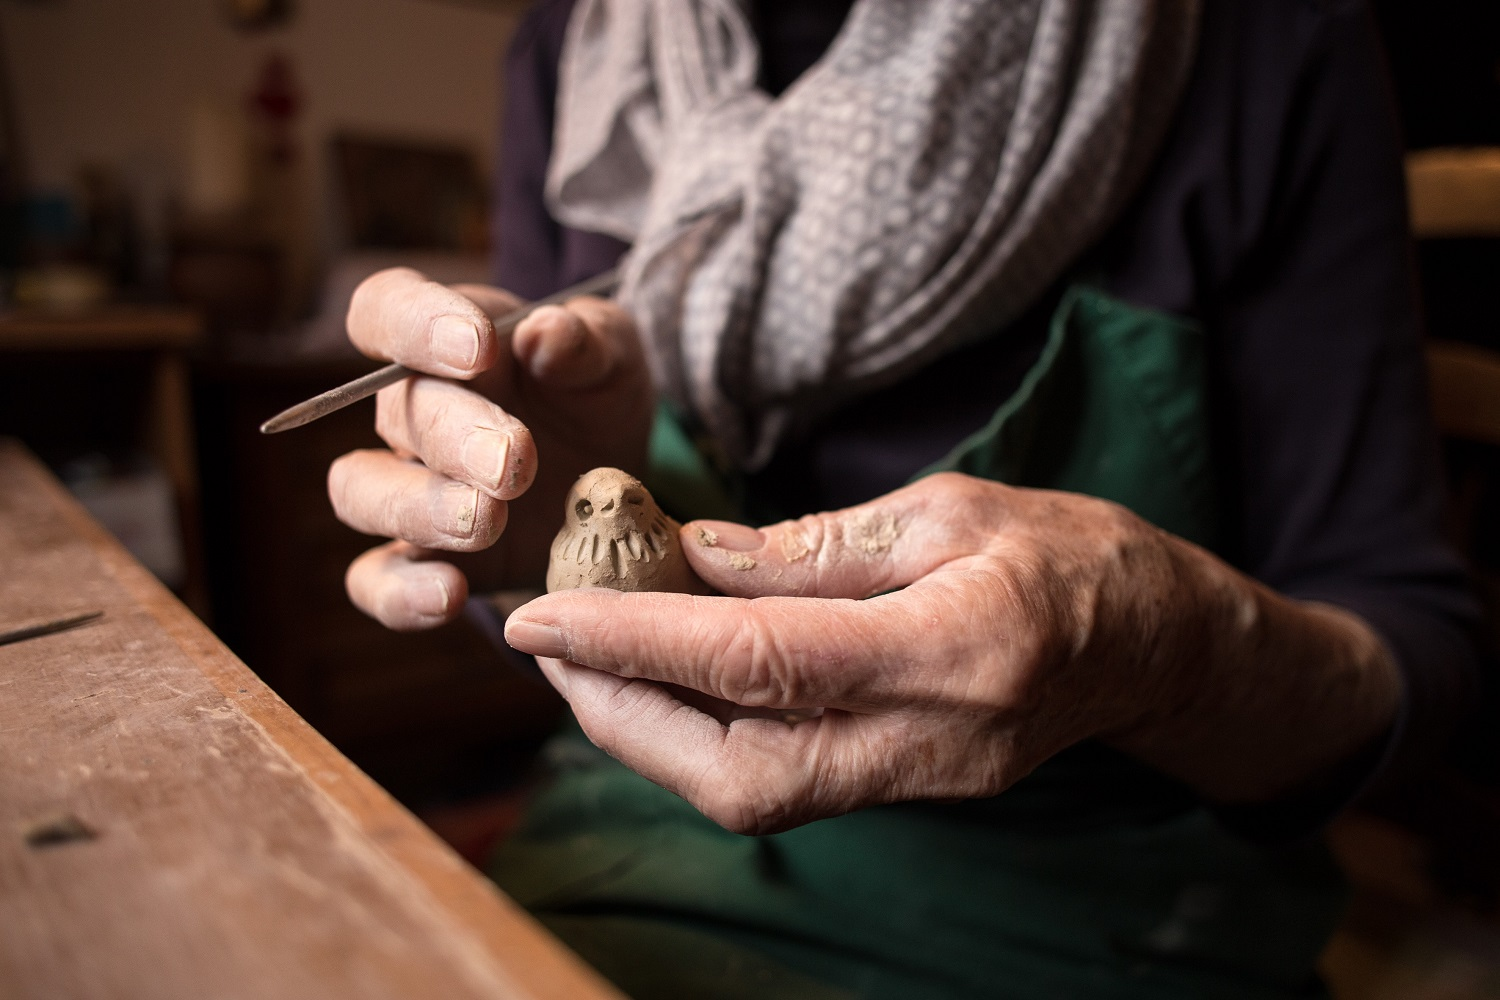 A woman molds a ball of clay into a bird shape using a putty knife.